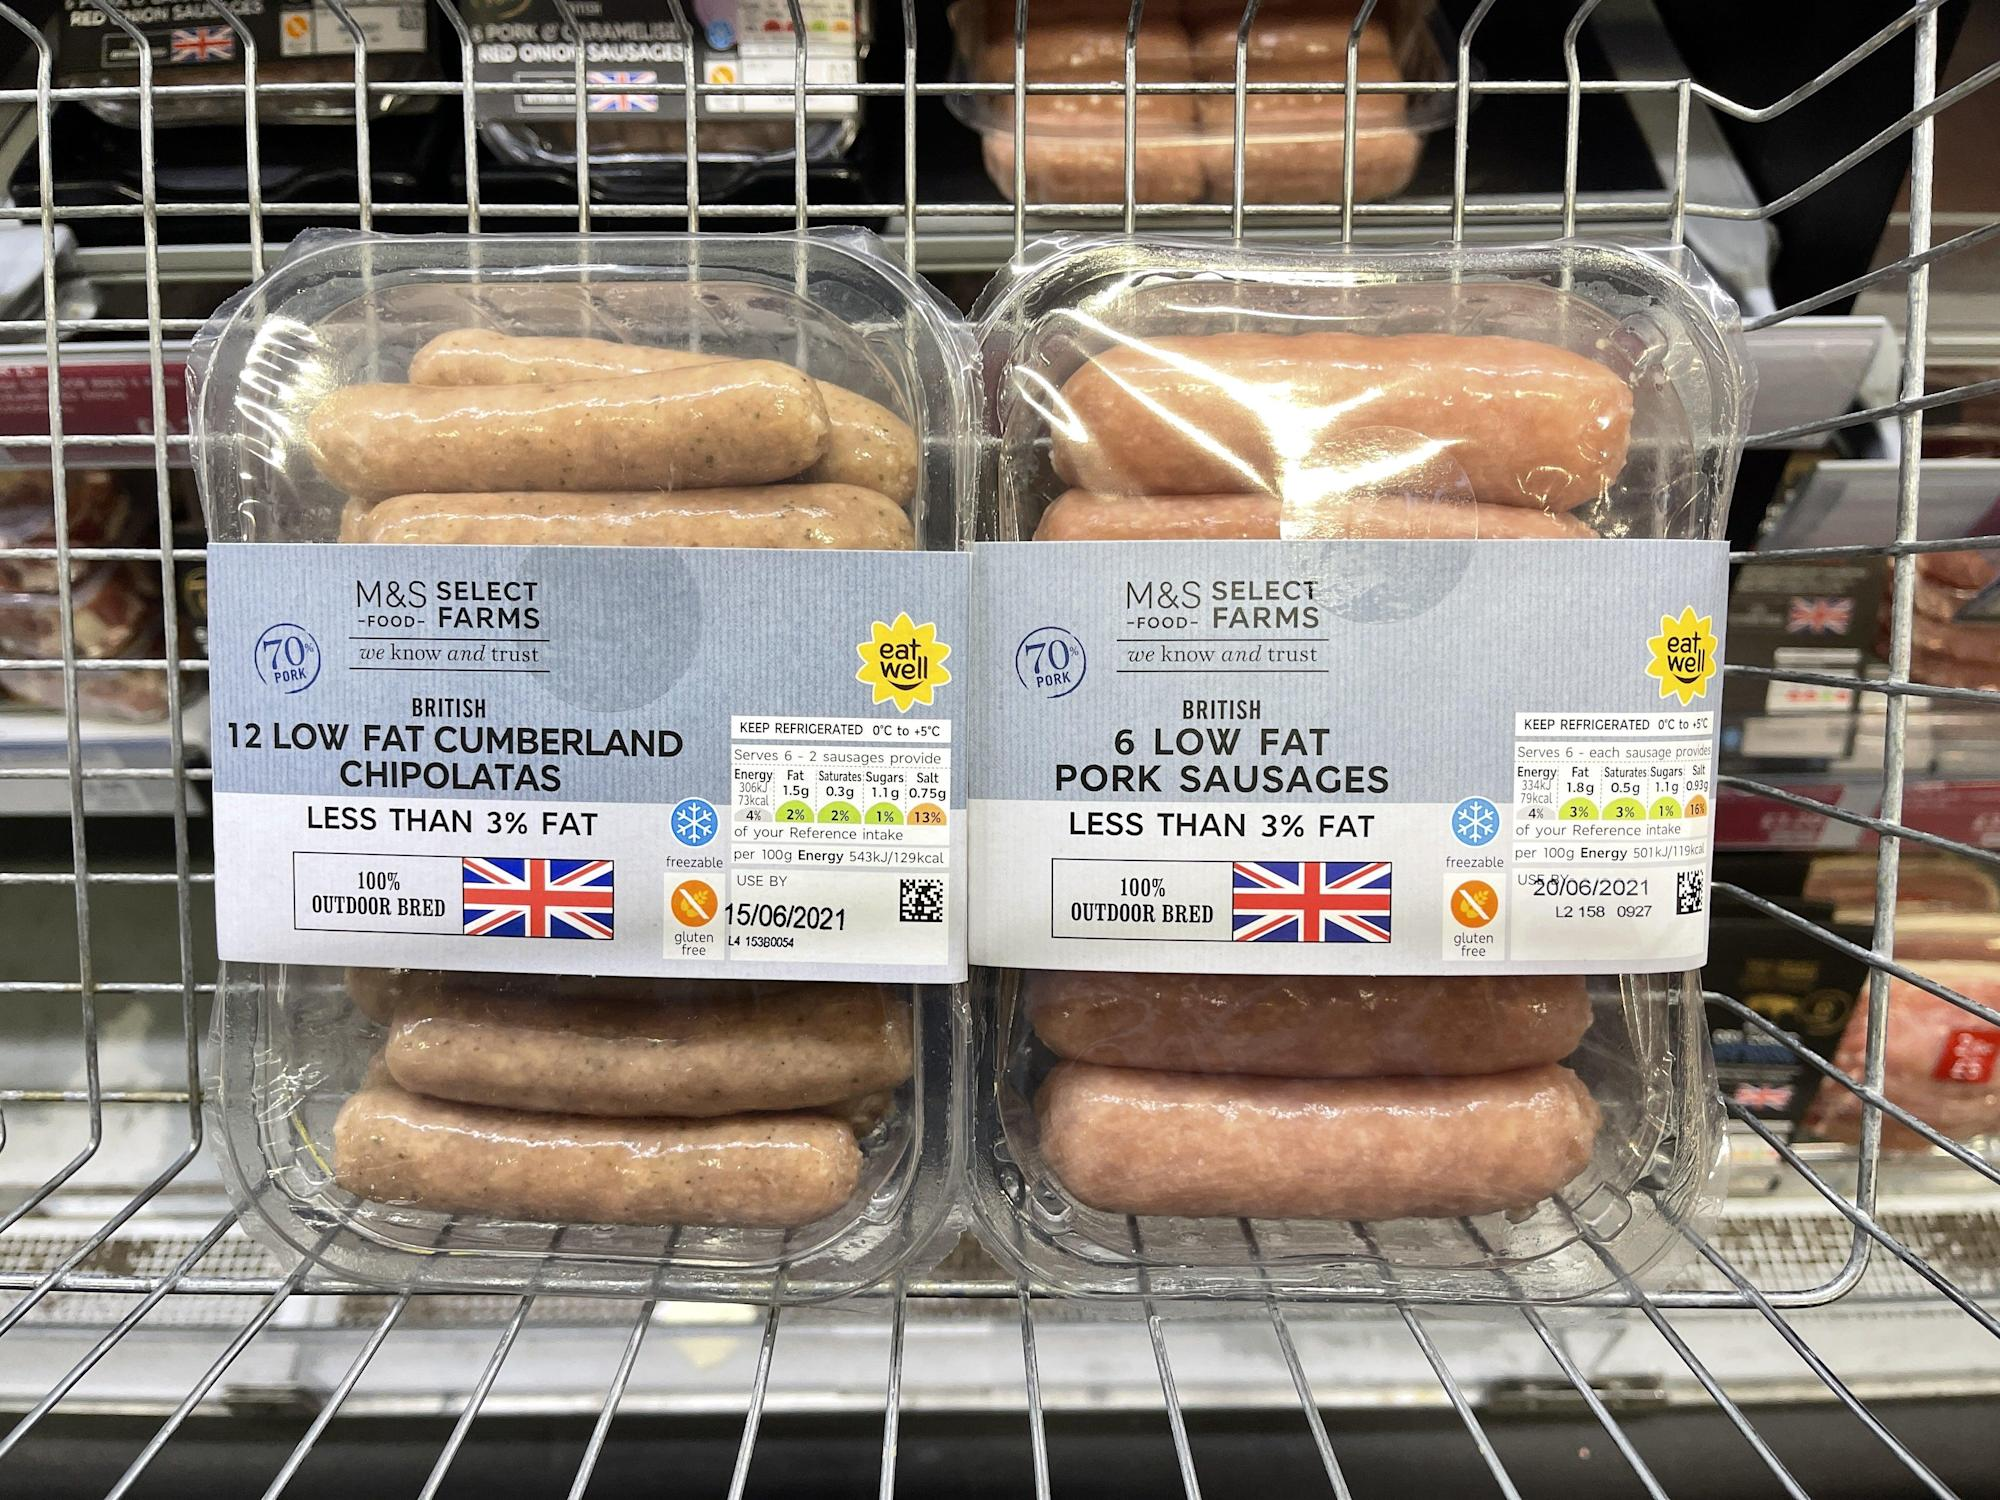 Northern Ireland supermarkets call for urgent action to prevent trade disruption